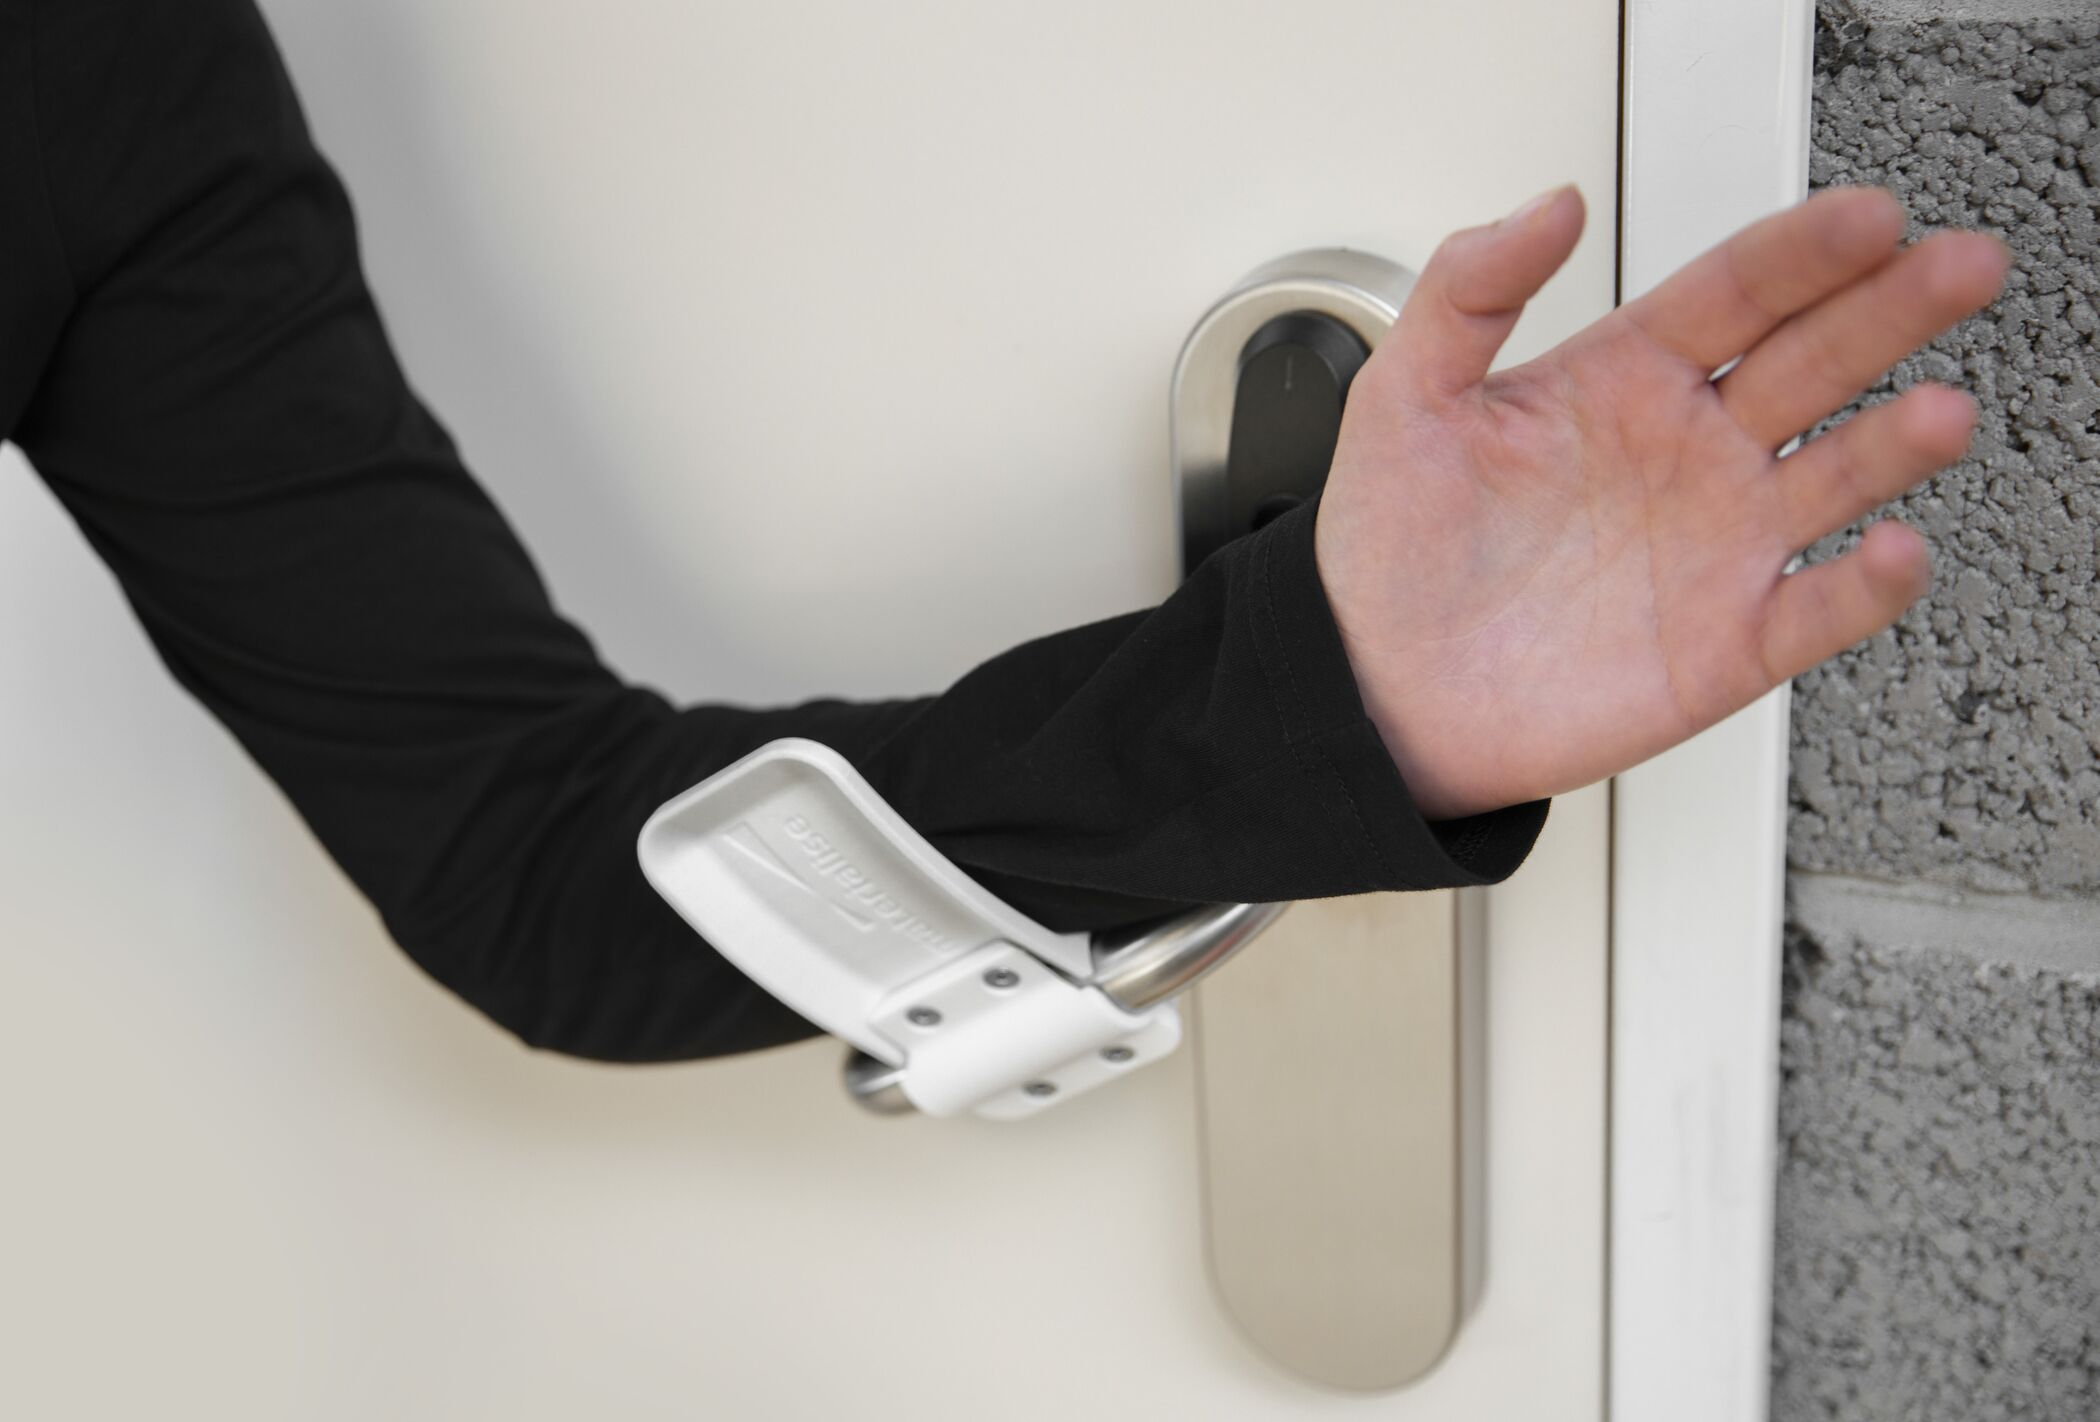 A person demonstrating how to use a hands-free door opener